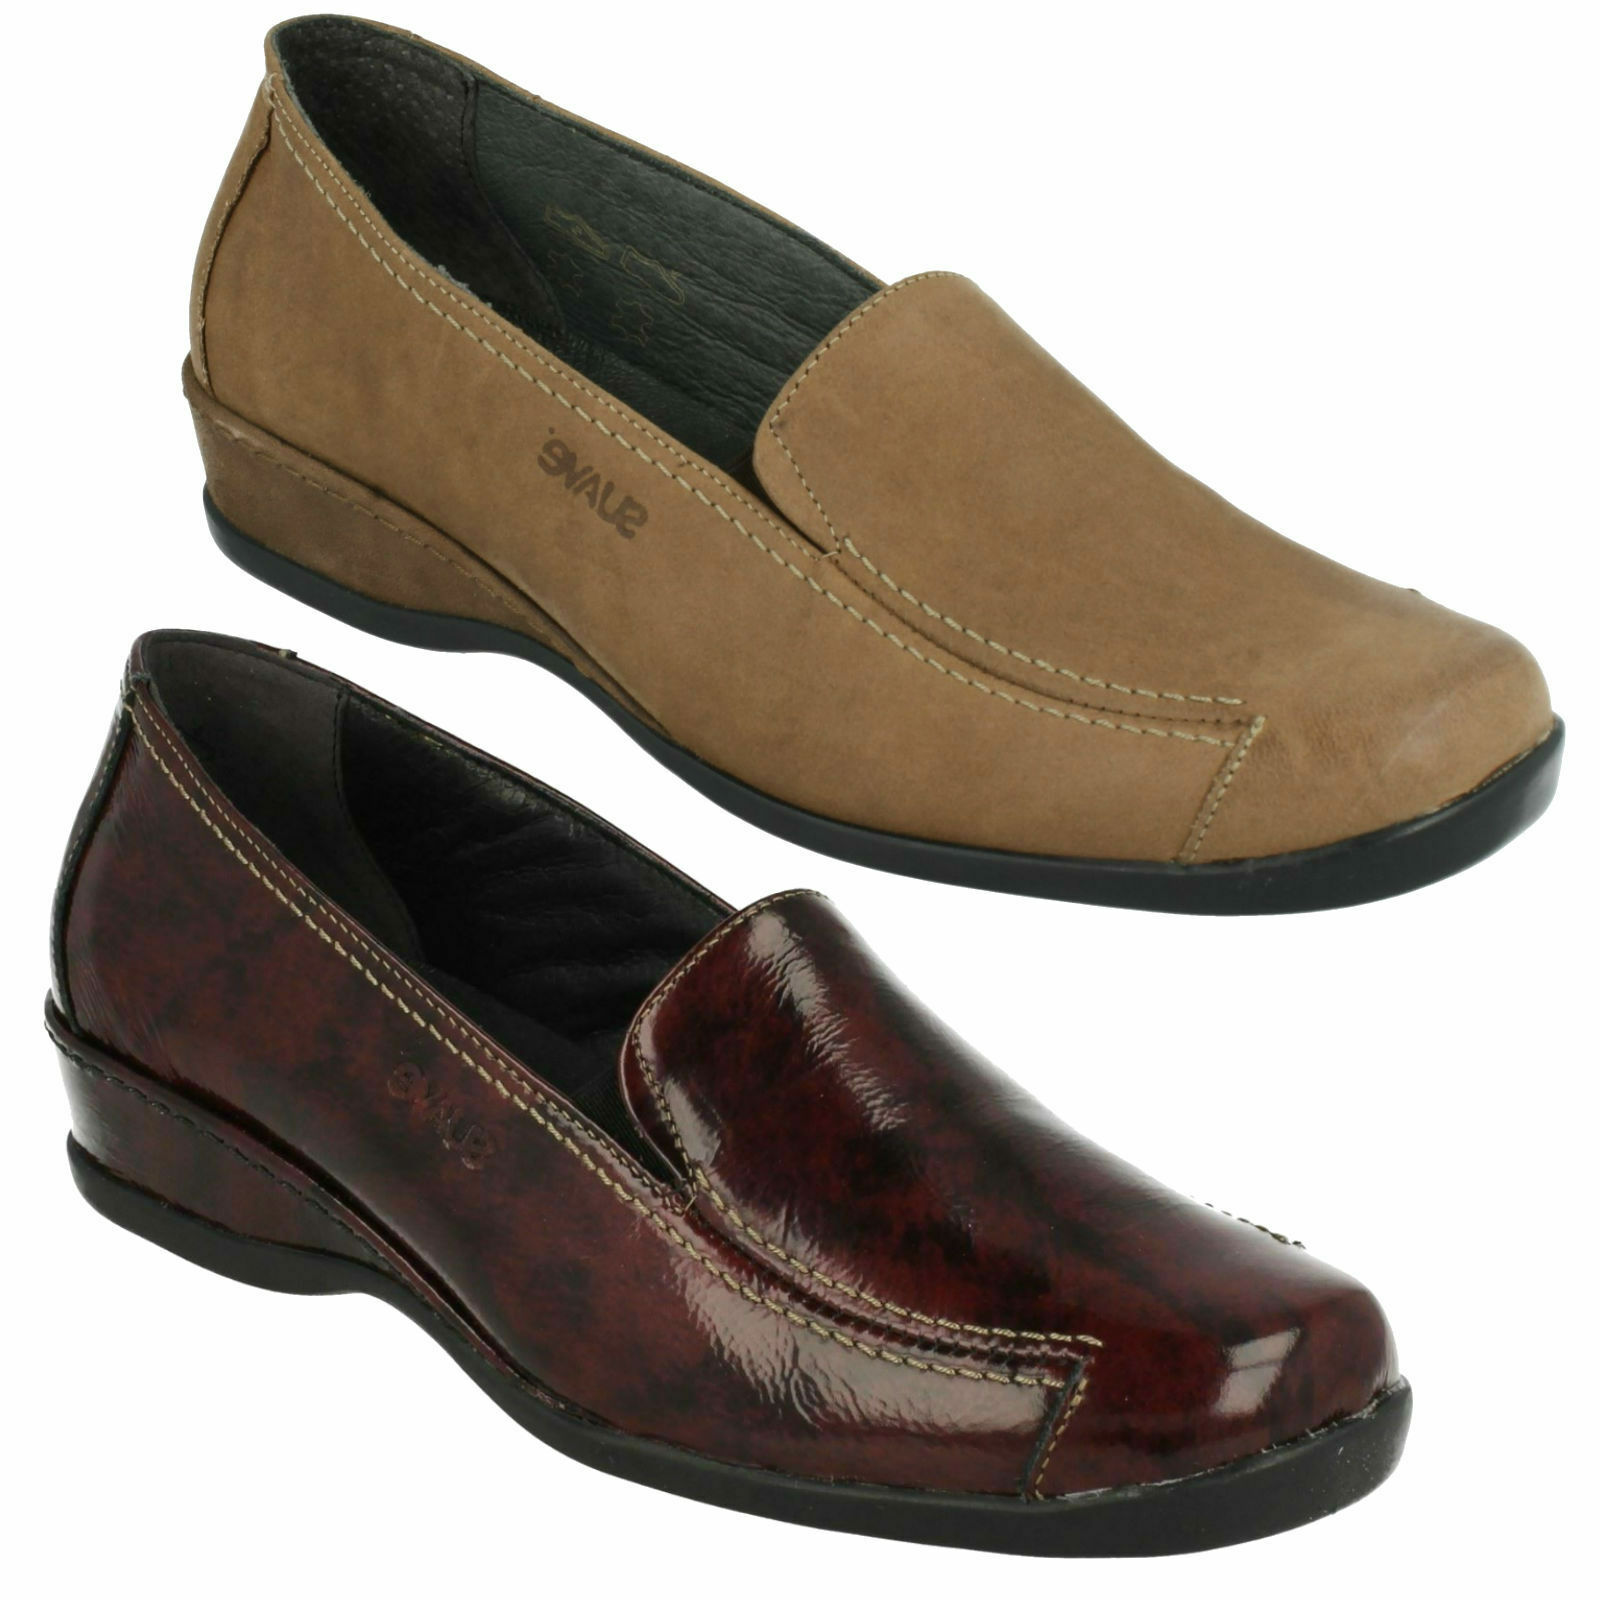 e07ee8036b3 LADIES SLIP ON ELASTIC GUSSET LEATHER WIDE FIT LOAFER SHOES MARIA COMFORT  SUAVE npteih3414-Women s Comfort Shoes